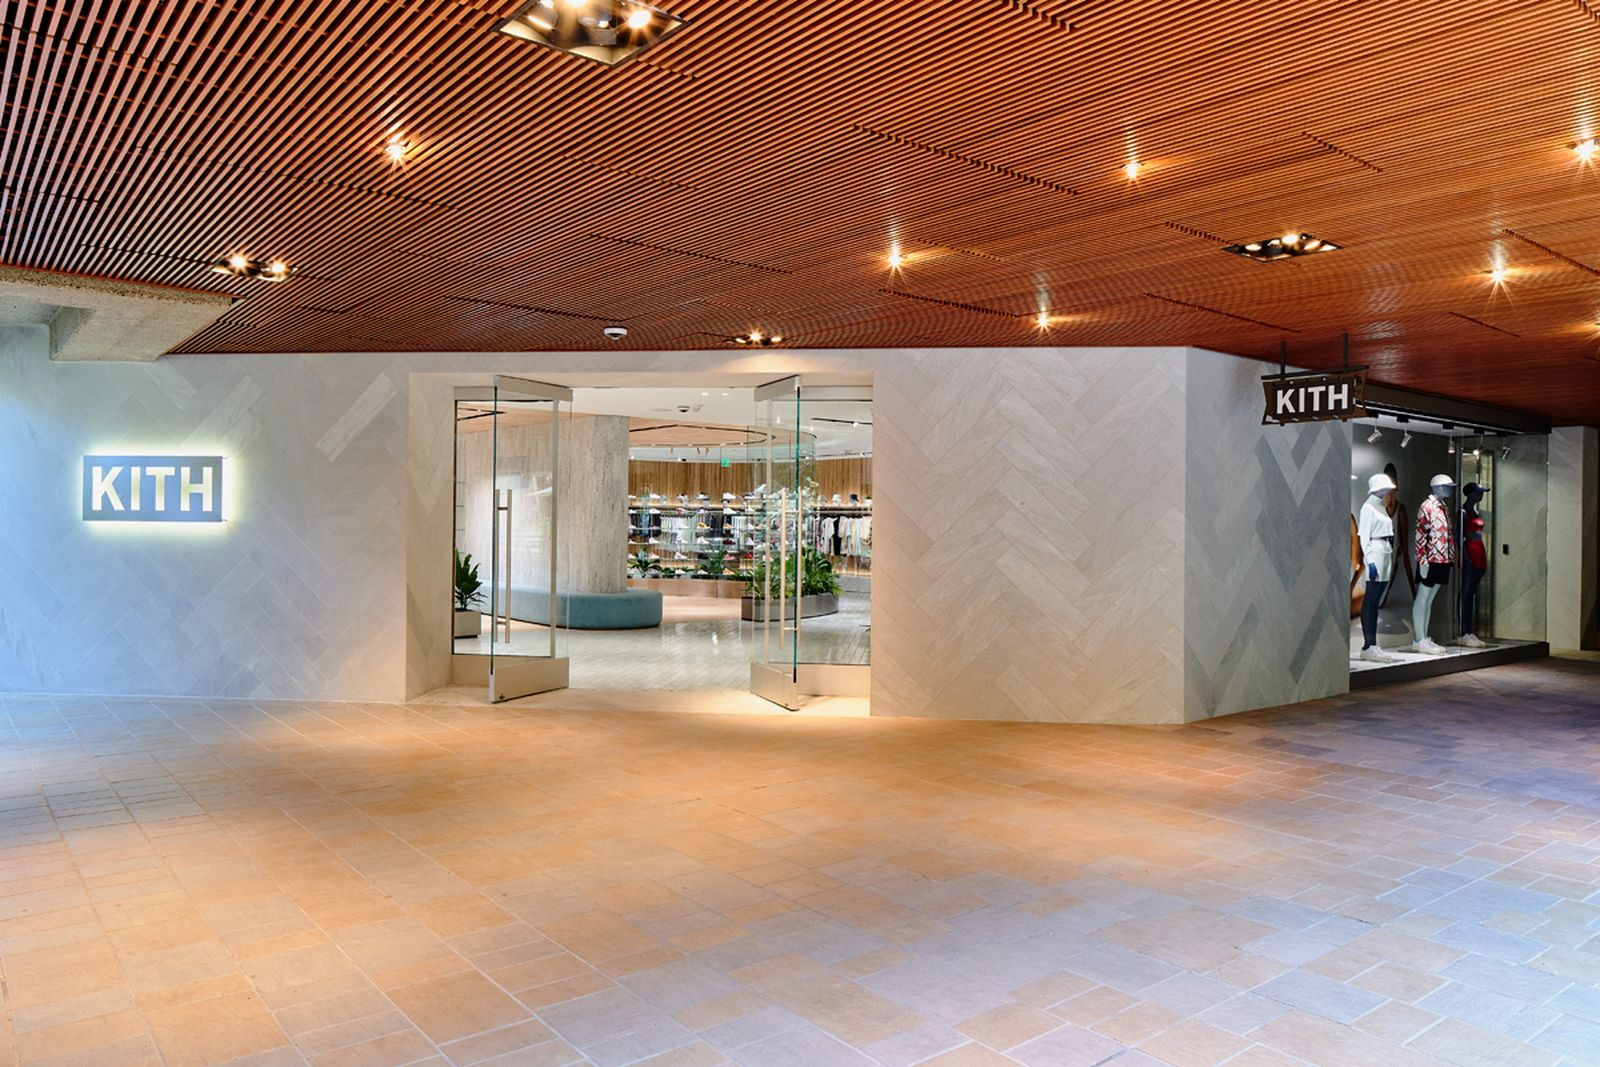 kith-hawaii-store-inside-air-force-1 (18)